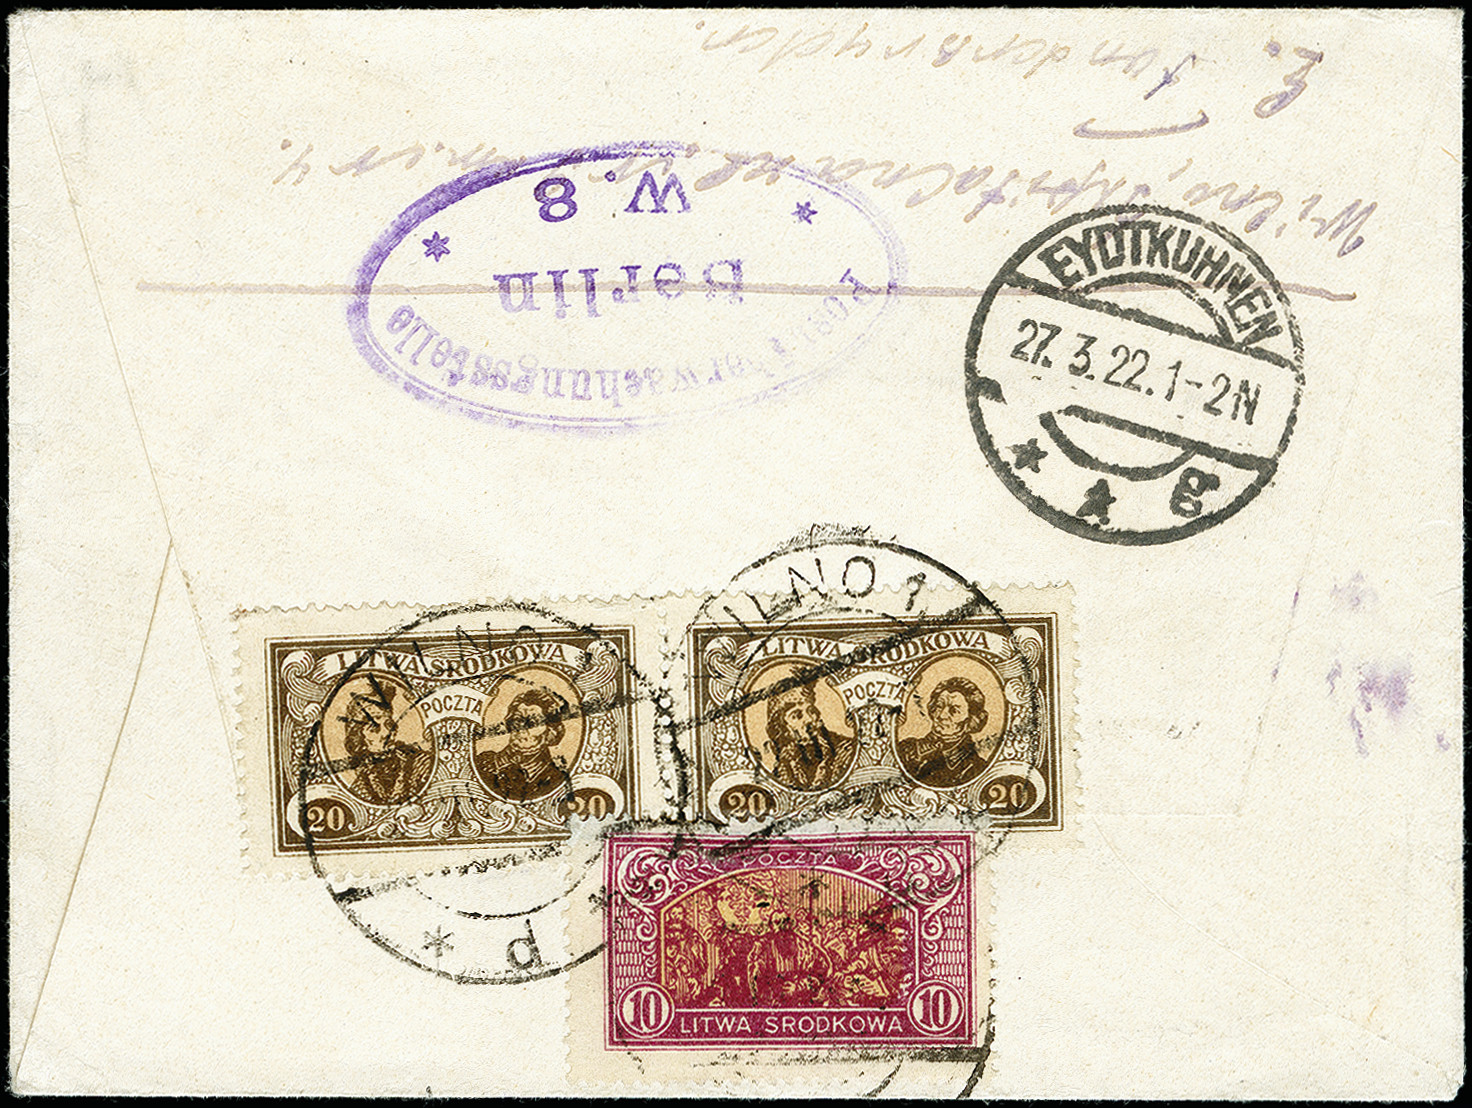 Lot 180 - europe central lithuania -  Heinrich Koehler Auktionen 373rd Heinrich Köhler auction - Day 1